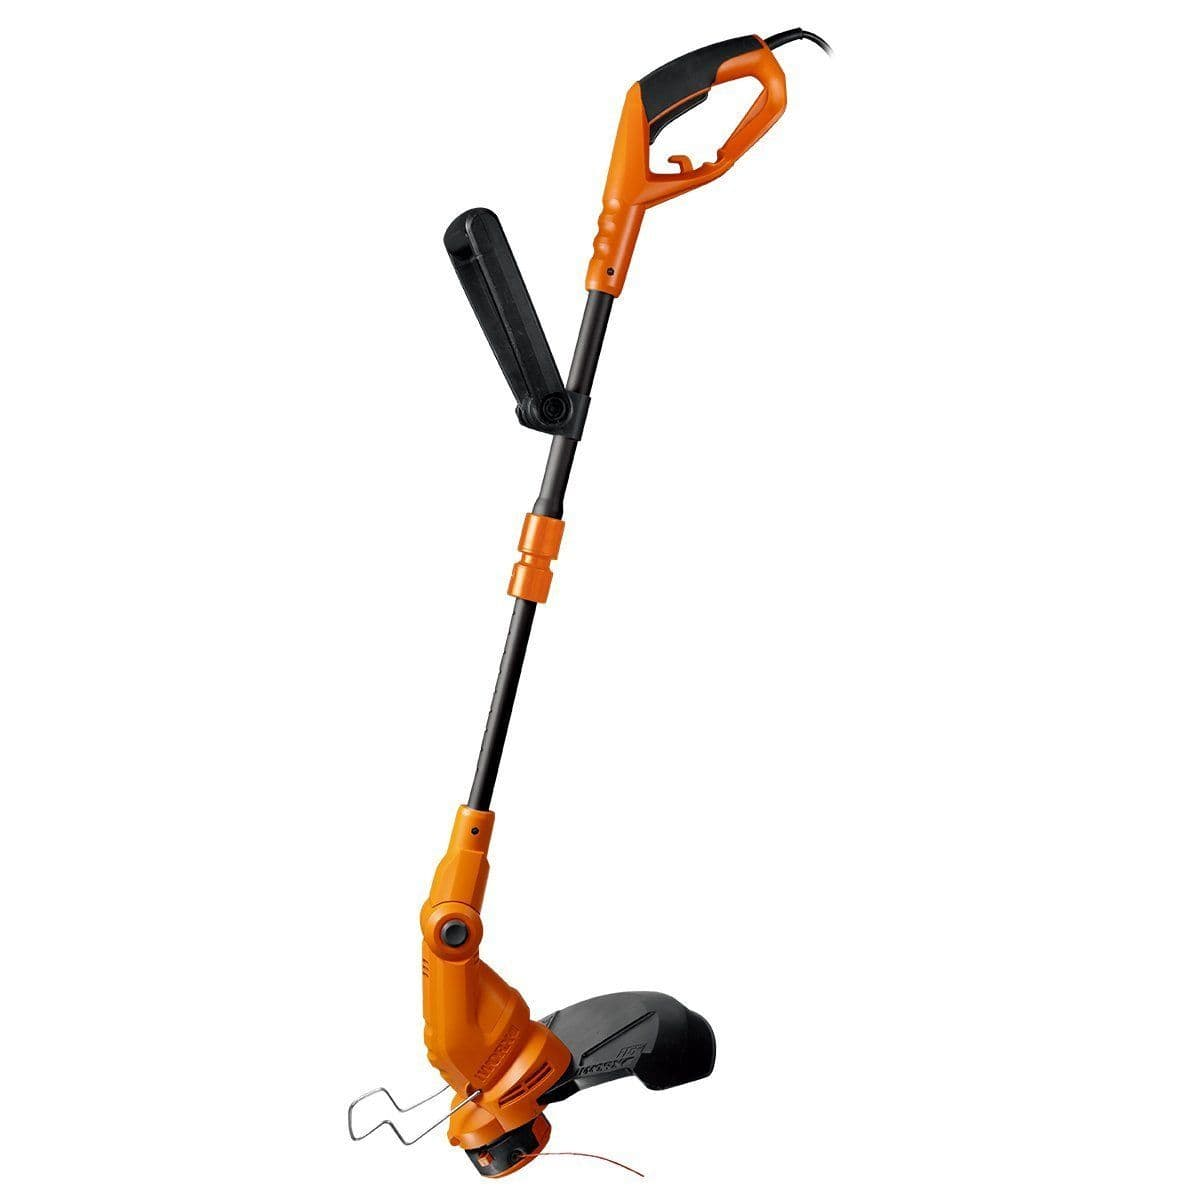 """WORX WG119 15"""" Electric Dual-Line 2-in-1 Grass Trimmer & Edger $20 + Free Shipping (eBay Daily Deal)"""